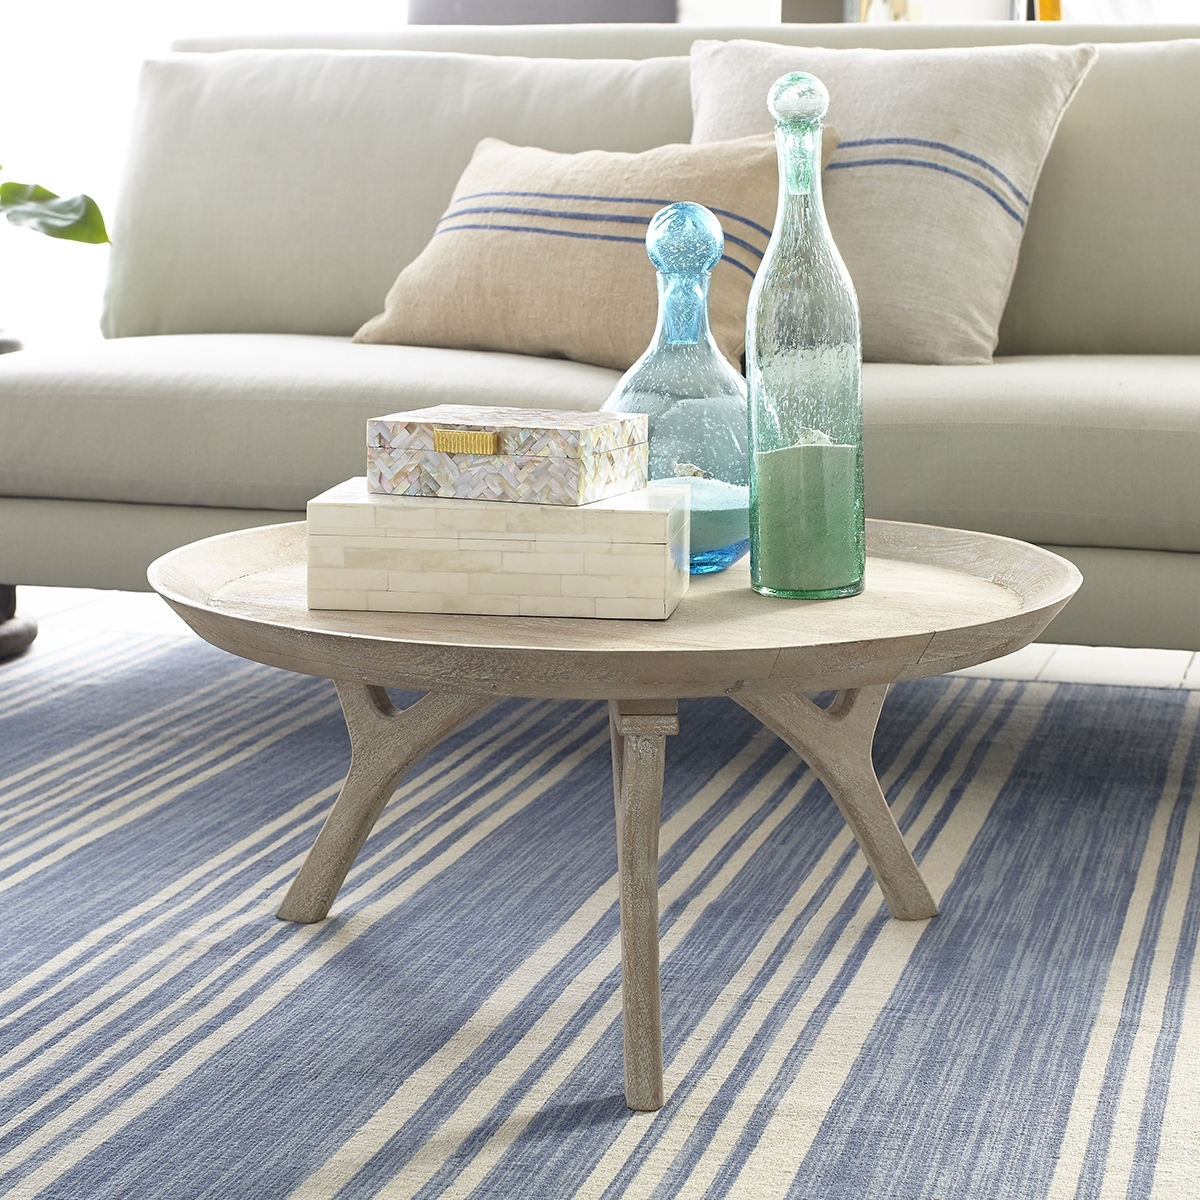 Wisteria In Popular Broll Coffee Tables (View 15 of 20)